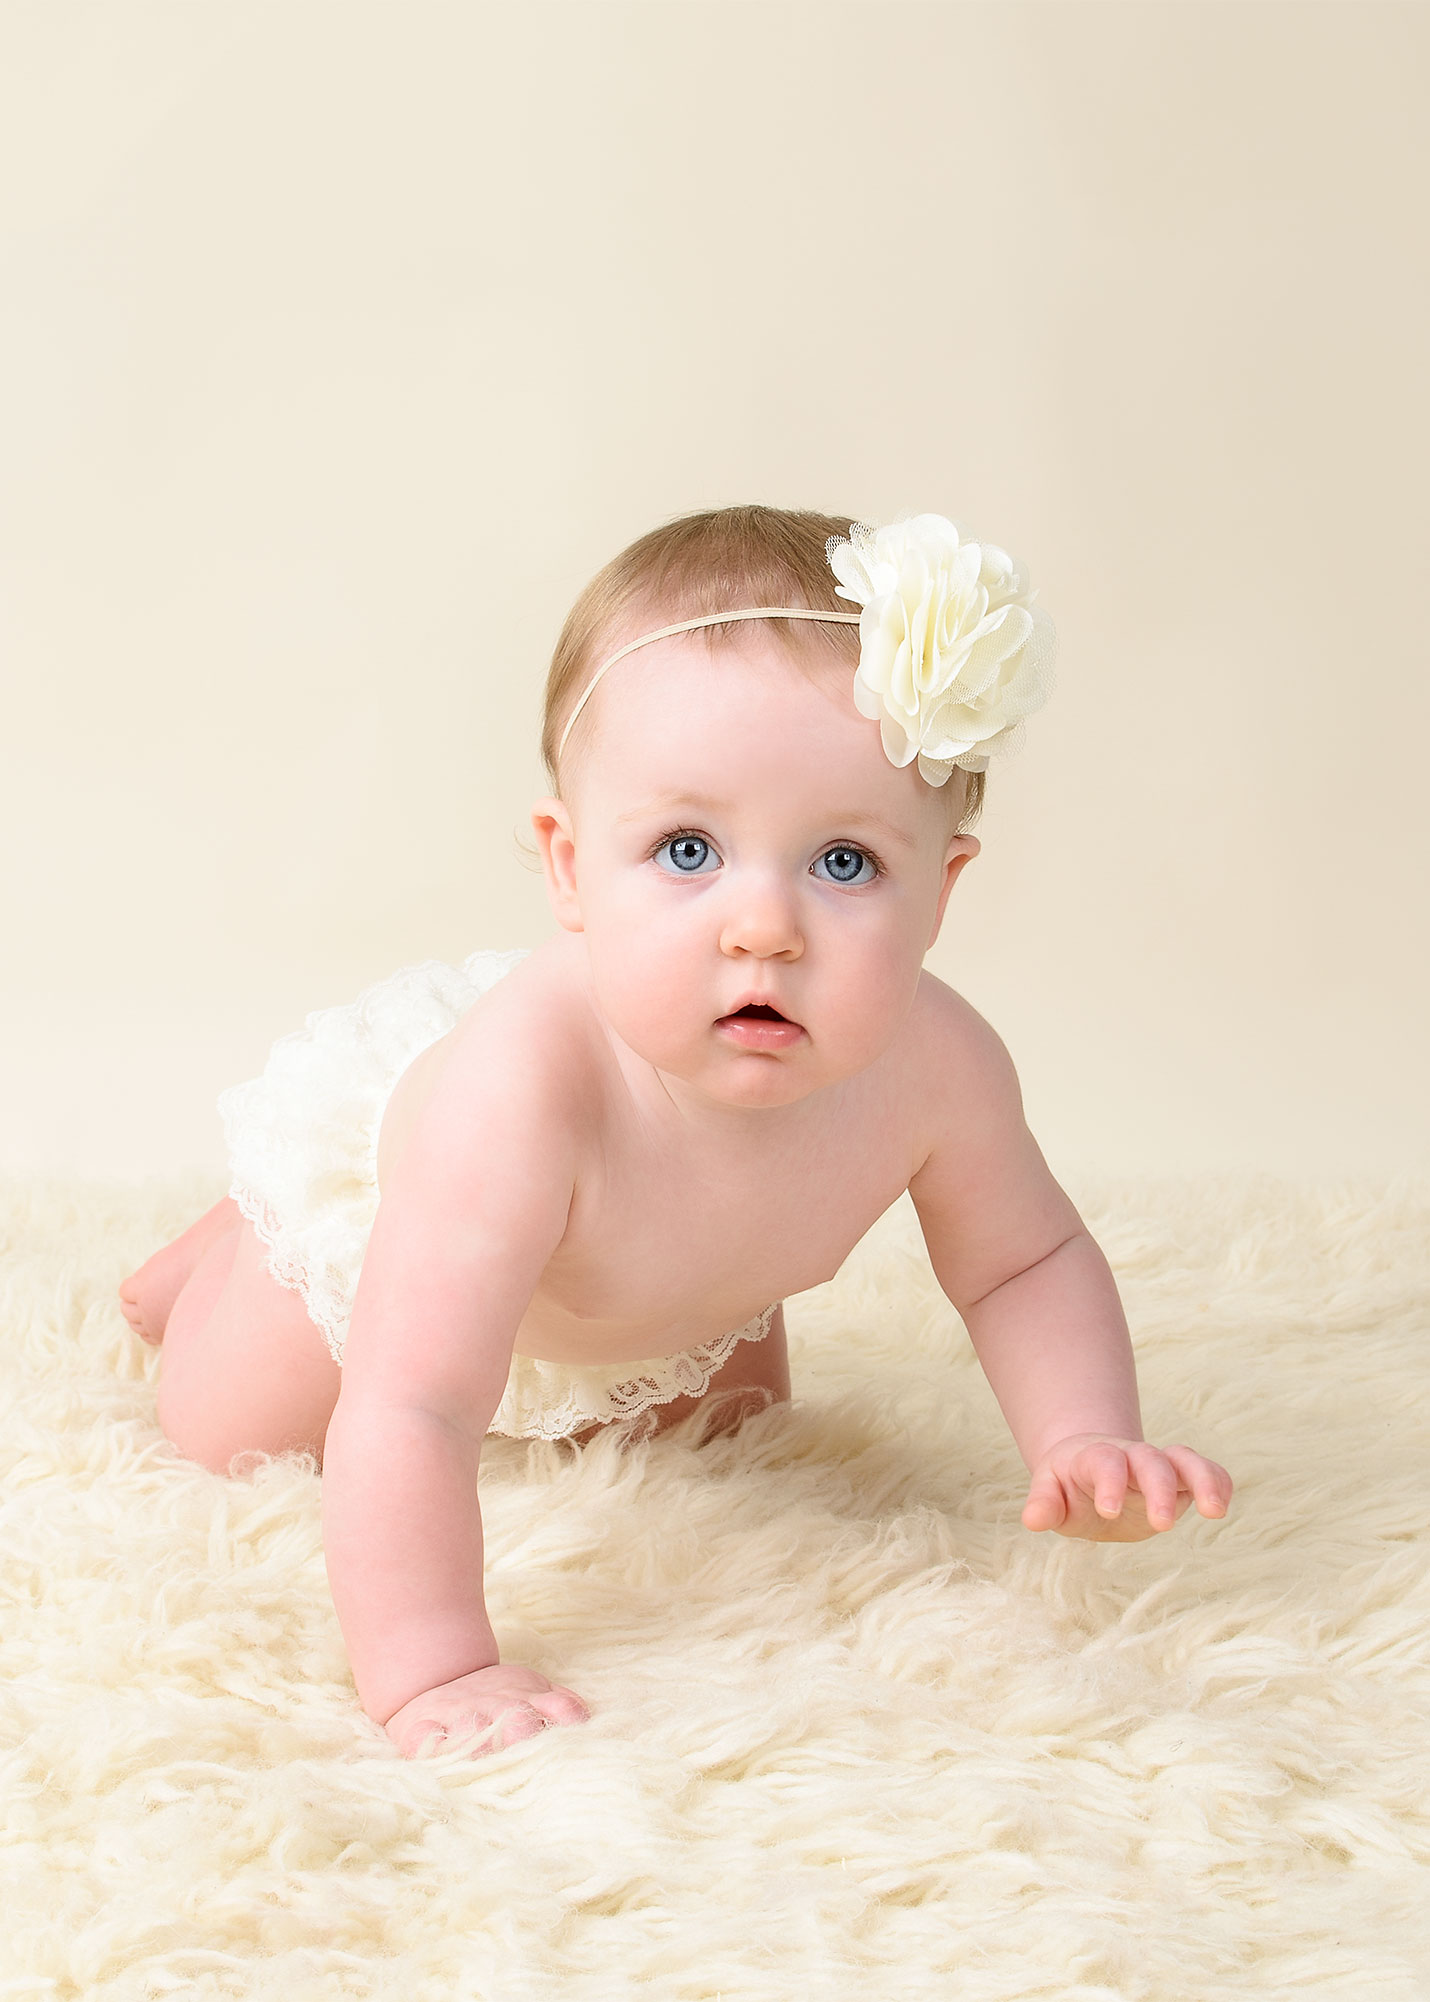 Portrait of little girl crawling on beige background in magnolia moments professional photography studio near me